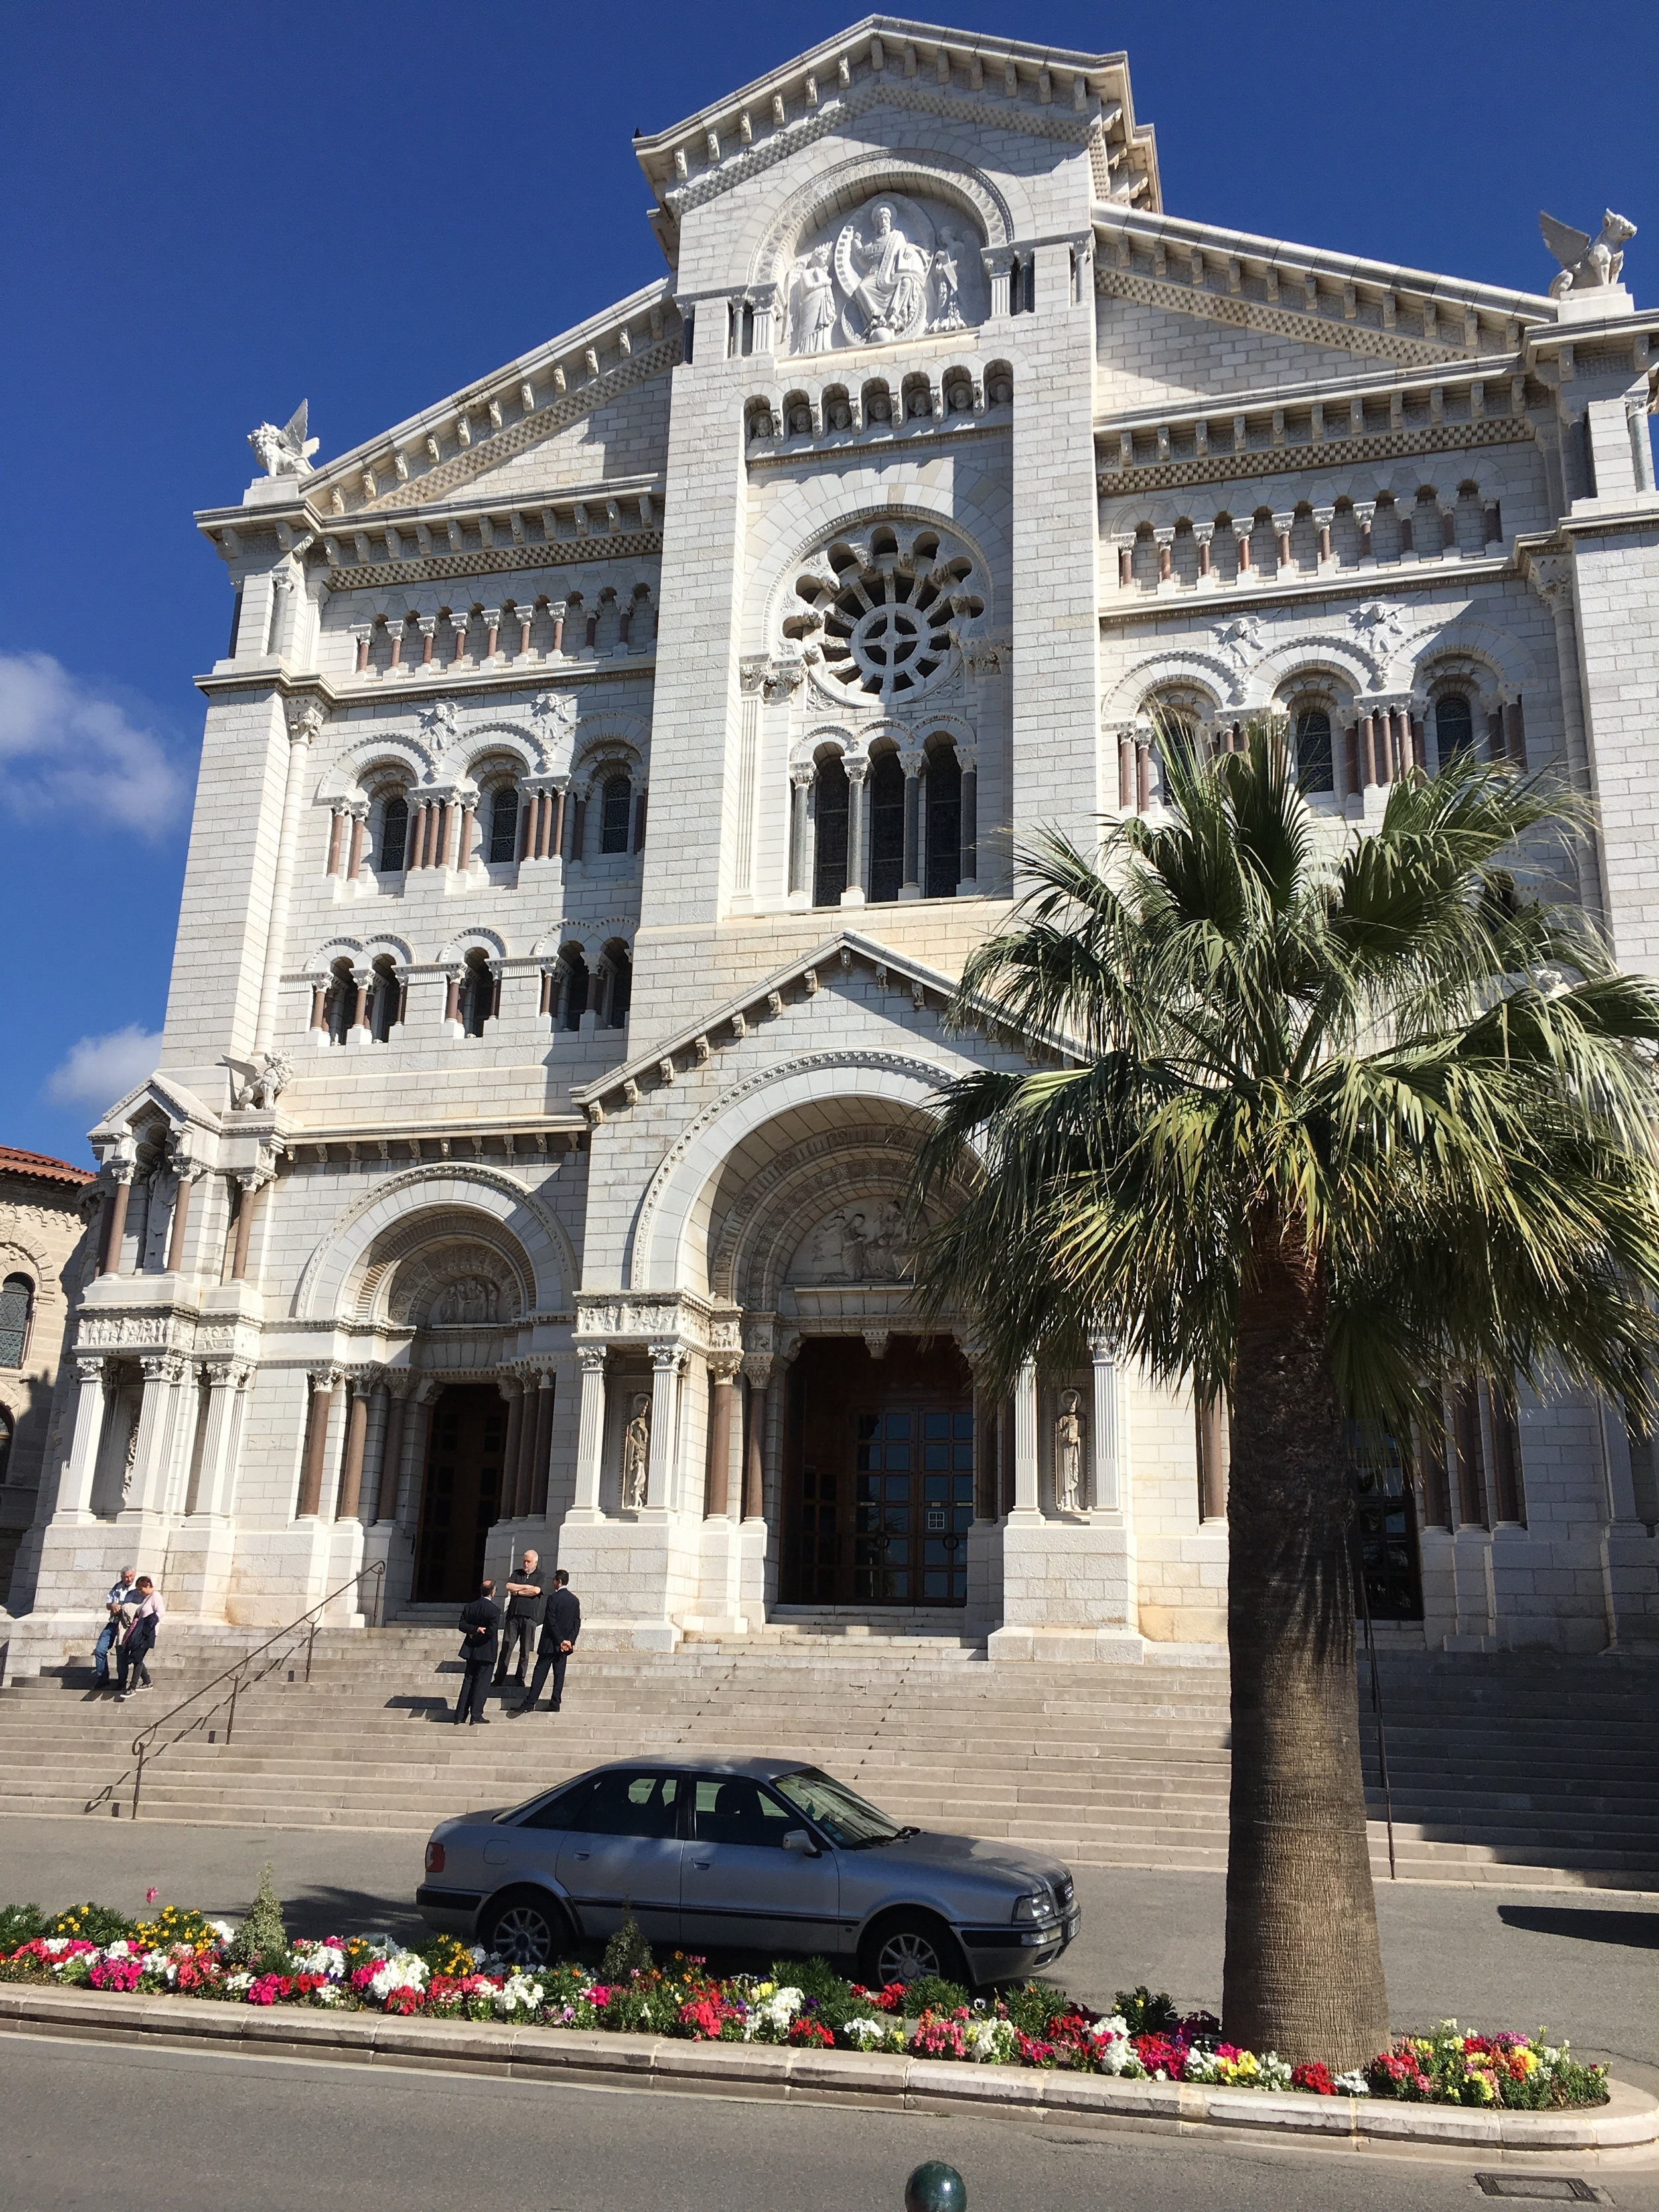 The cathedral in Monaco. It's small, and plain, but hey, all the Grimaldis are there.